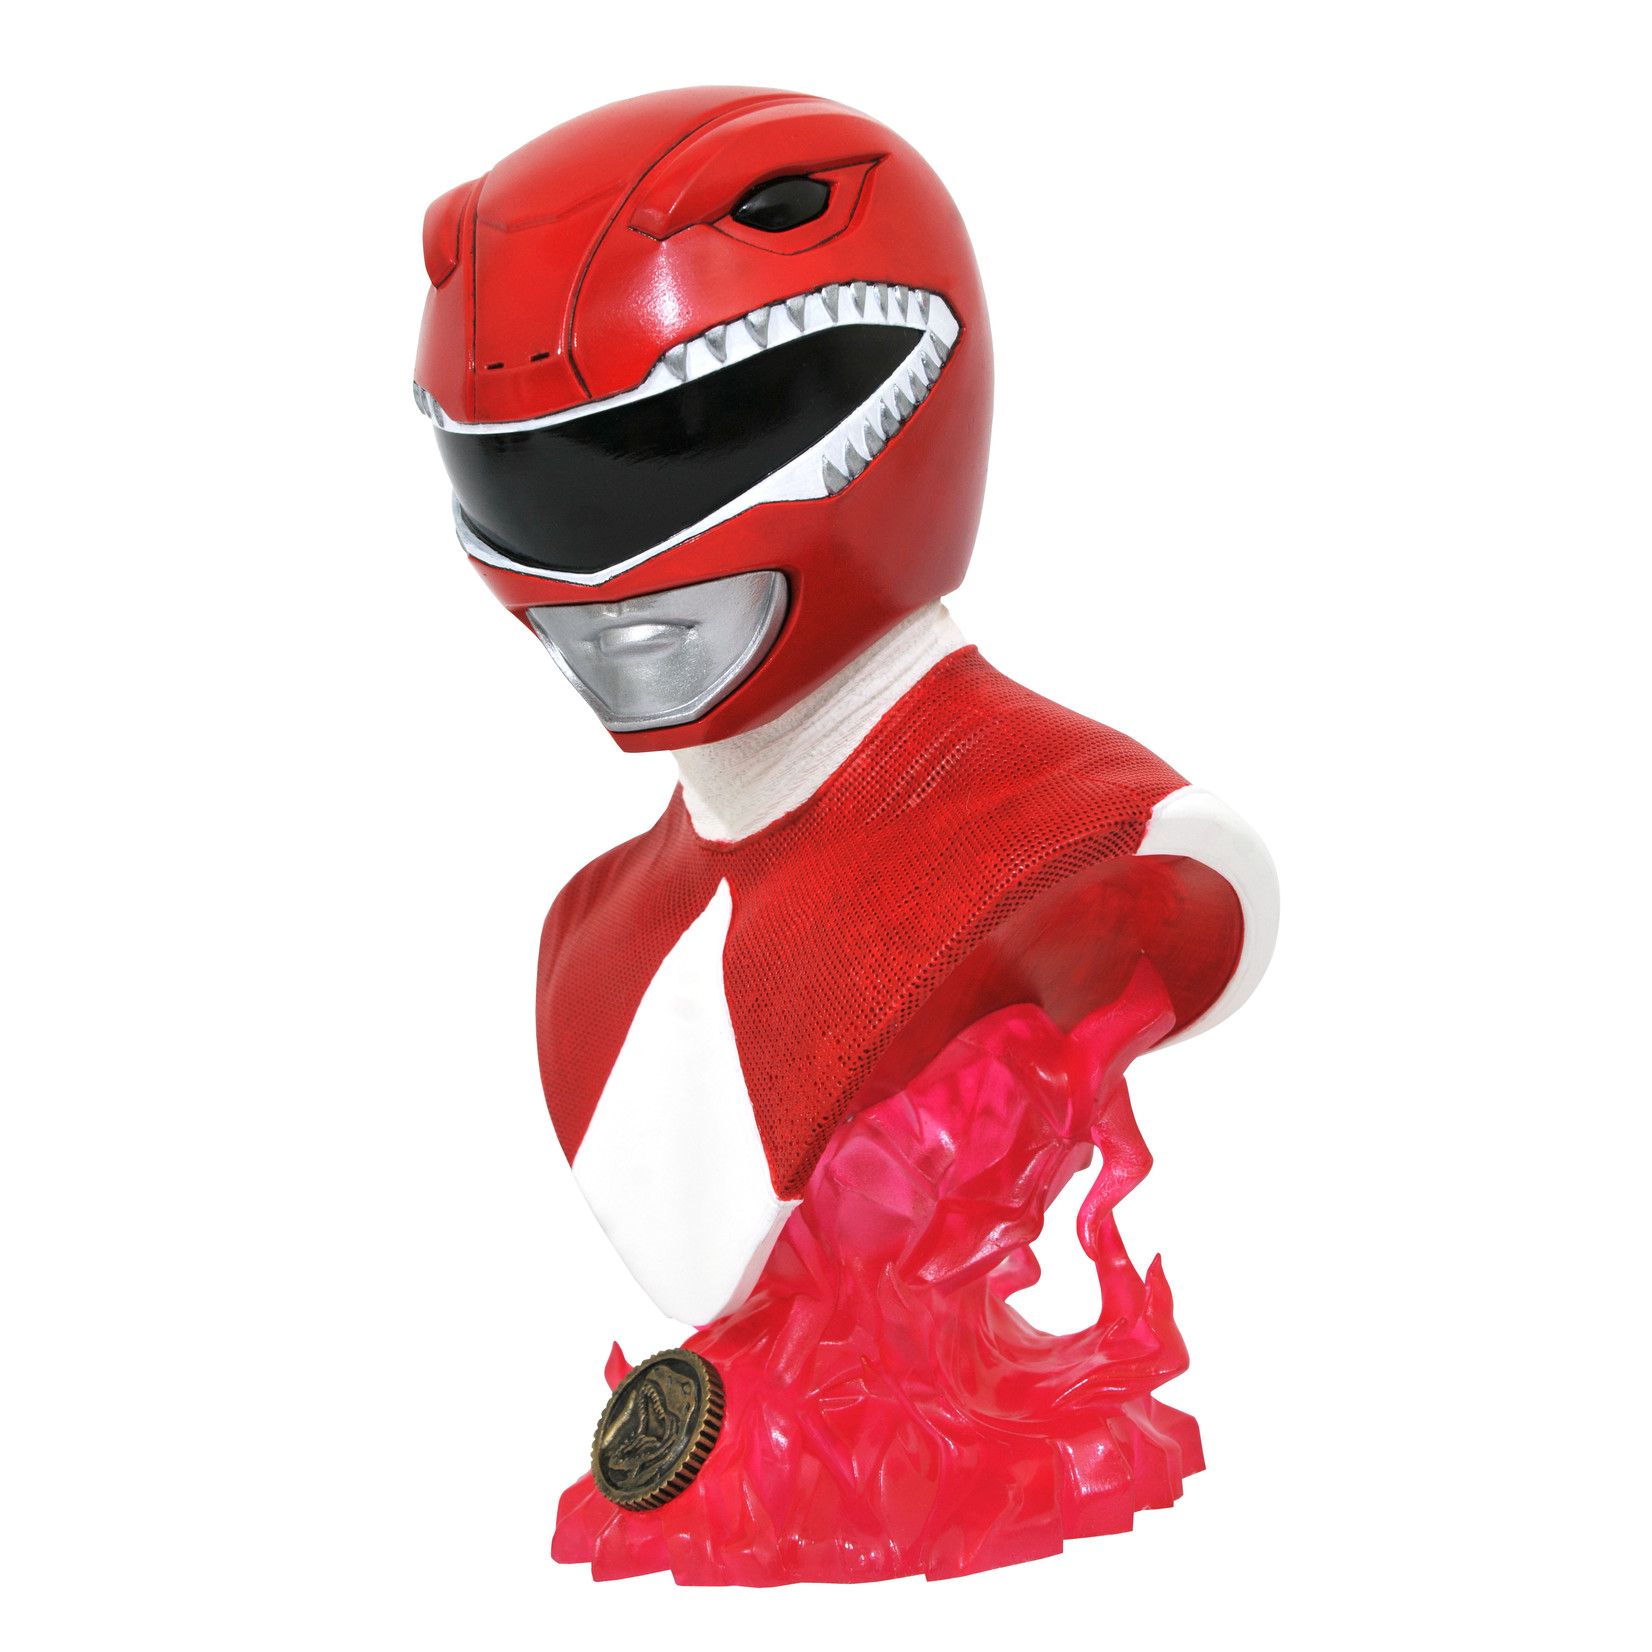 Diamond Select [Preorder] Legends in 3D TV: Power Rangers Red Ranger 1/2 Scale Bust